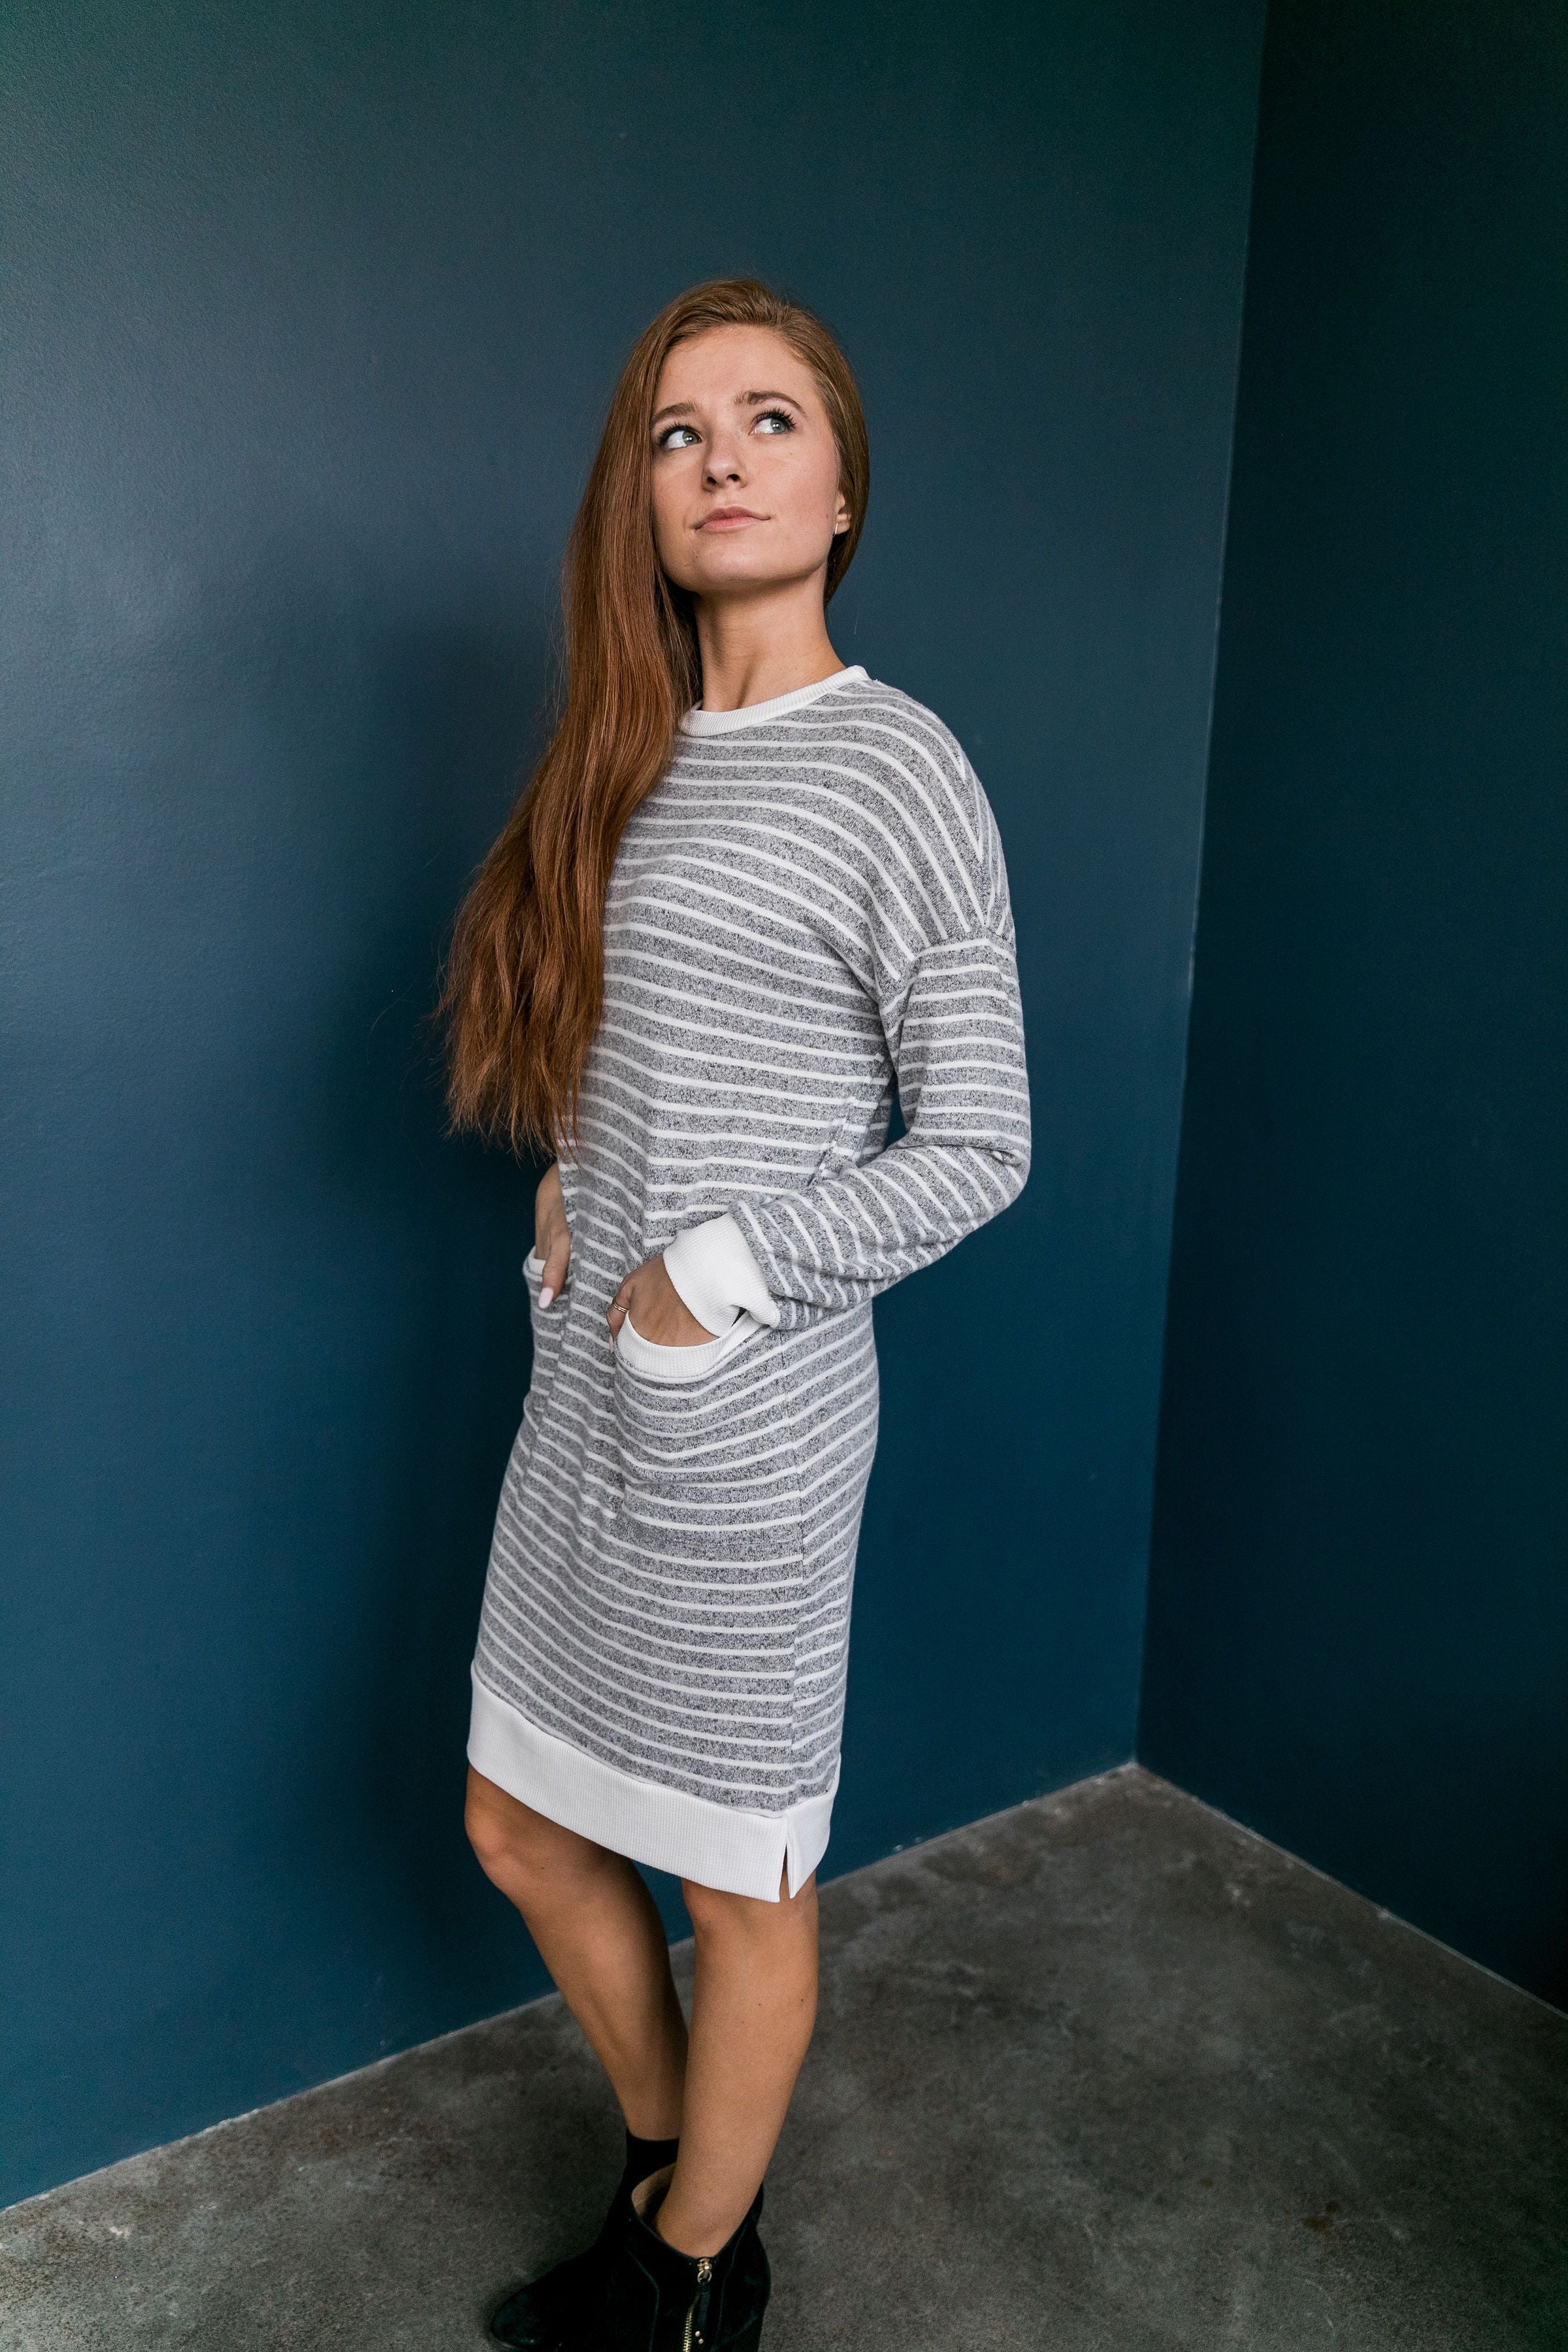 Georgia On My Mind Dress In Gray + White - ALL SALES FINAL